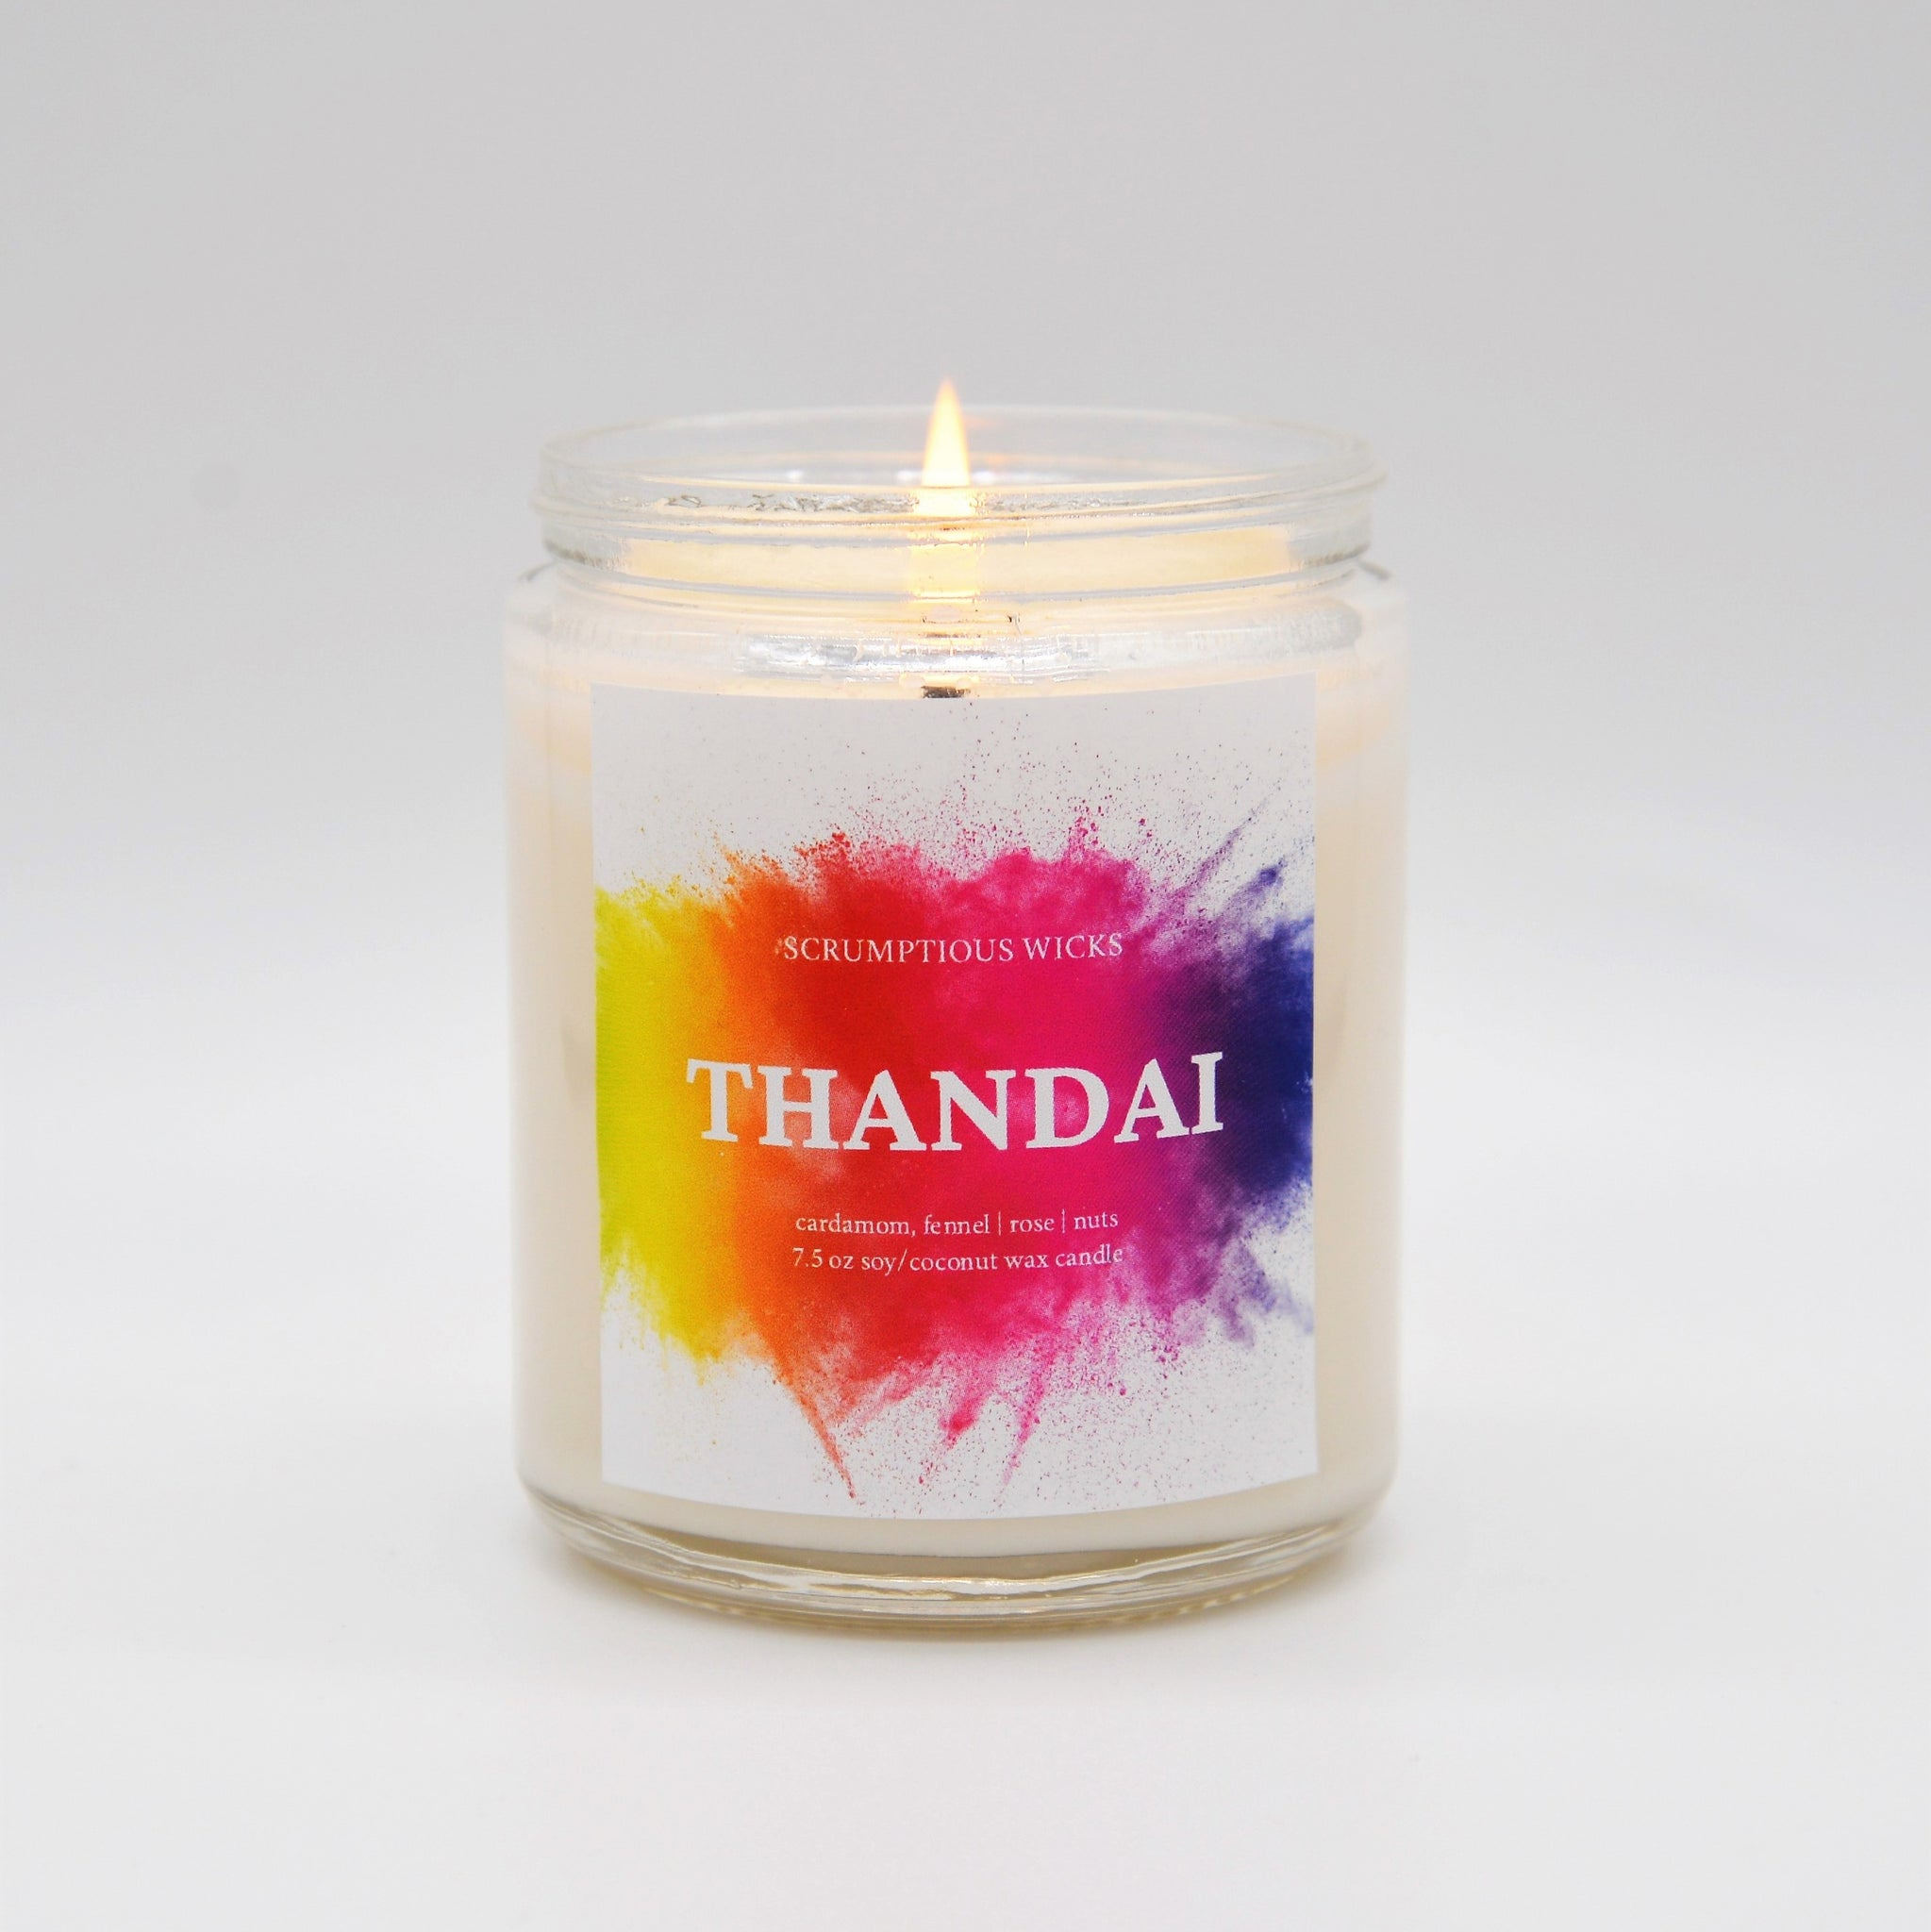 Thandai scented candle in glass jar with lit flame and vibrant, colorful label